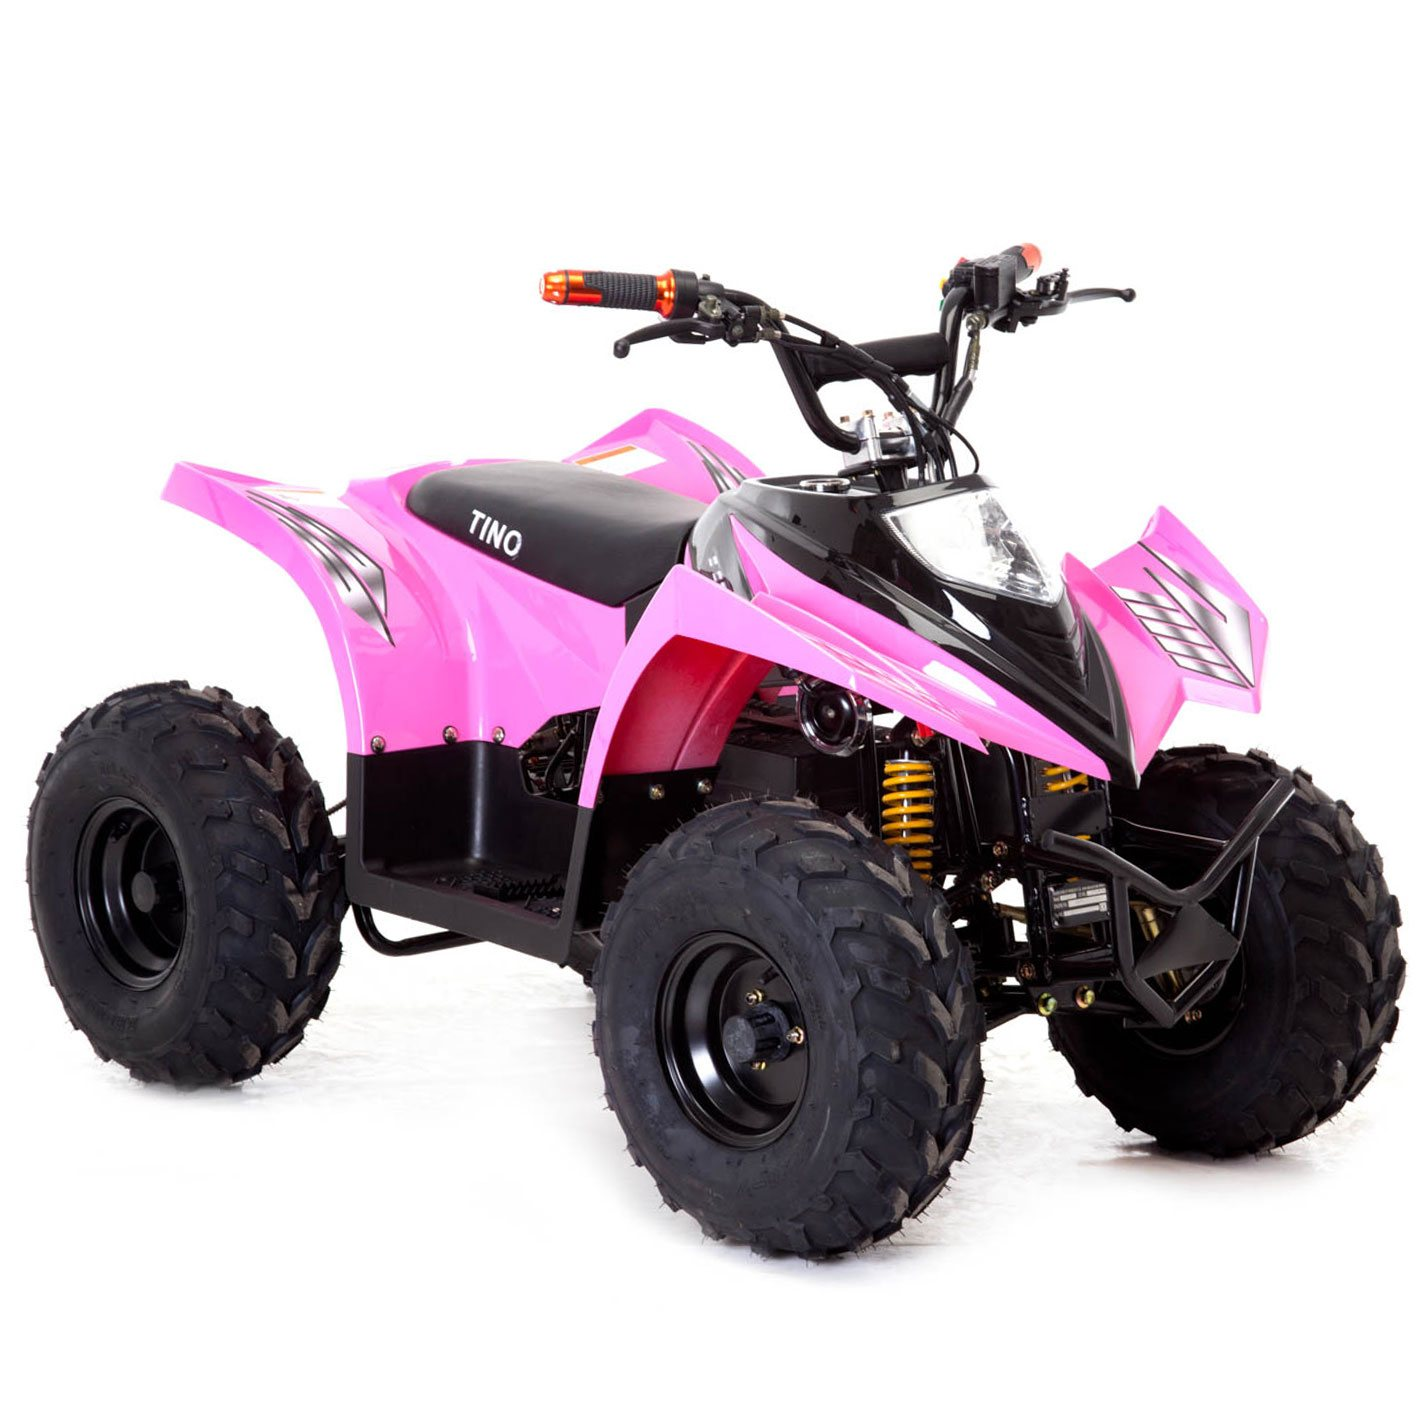 funbikes tino rally 750w pink electric childs quad bike. Black Bedroom Furniture Sets. Home Design Ideas